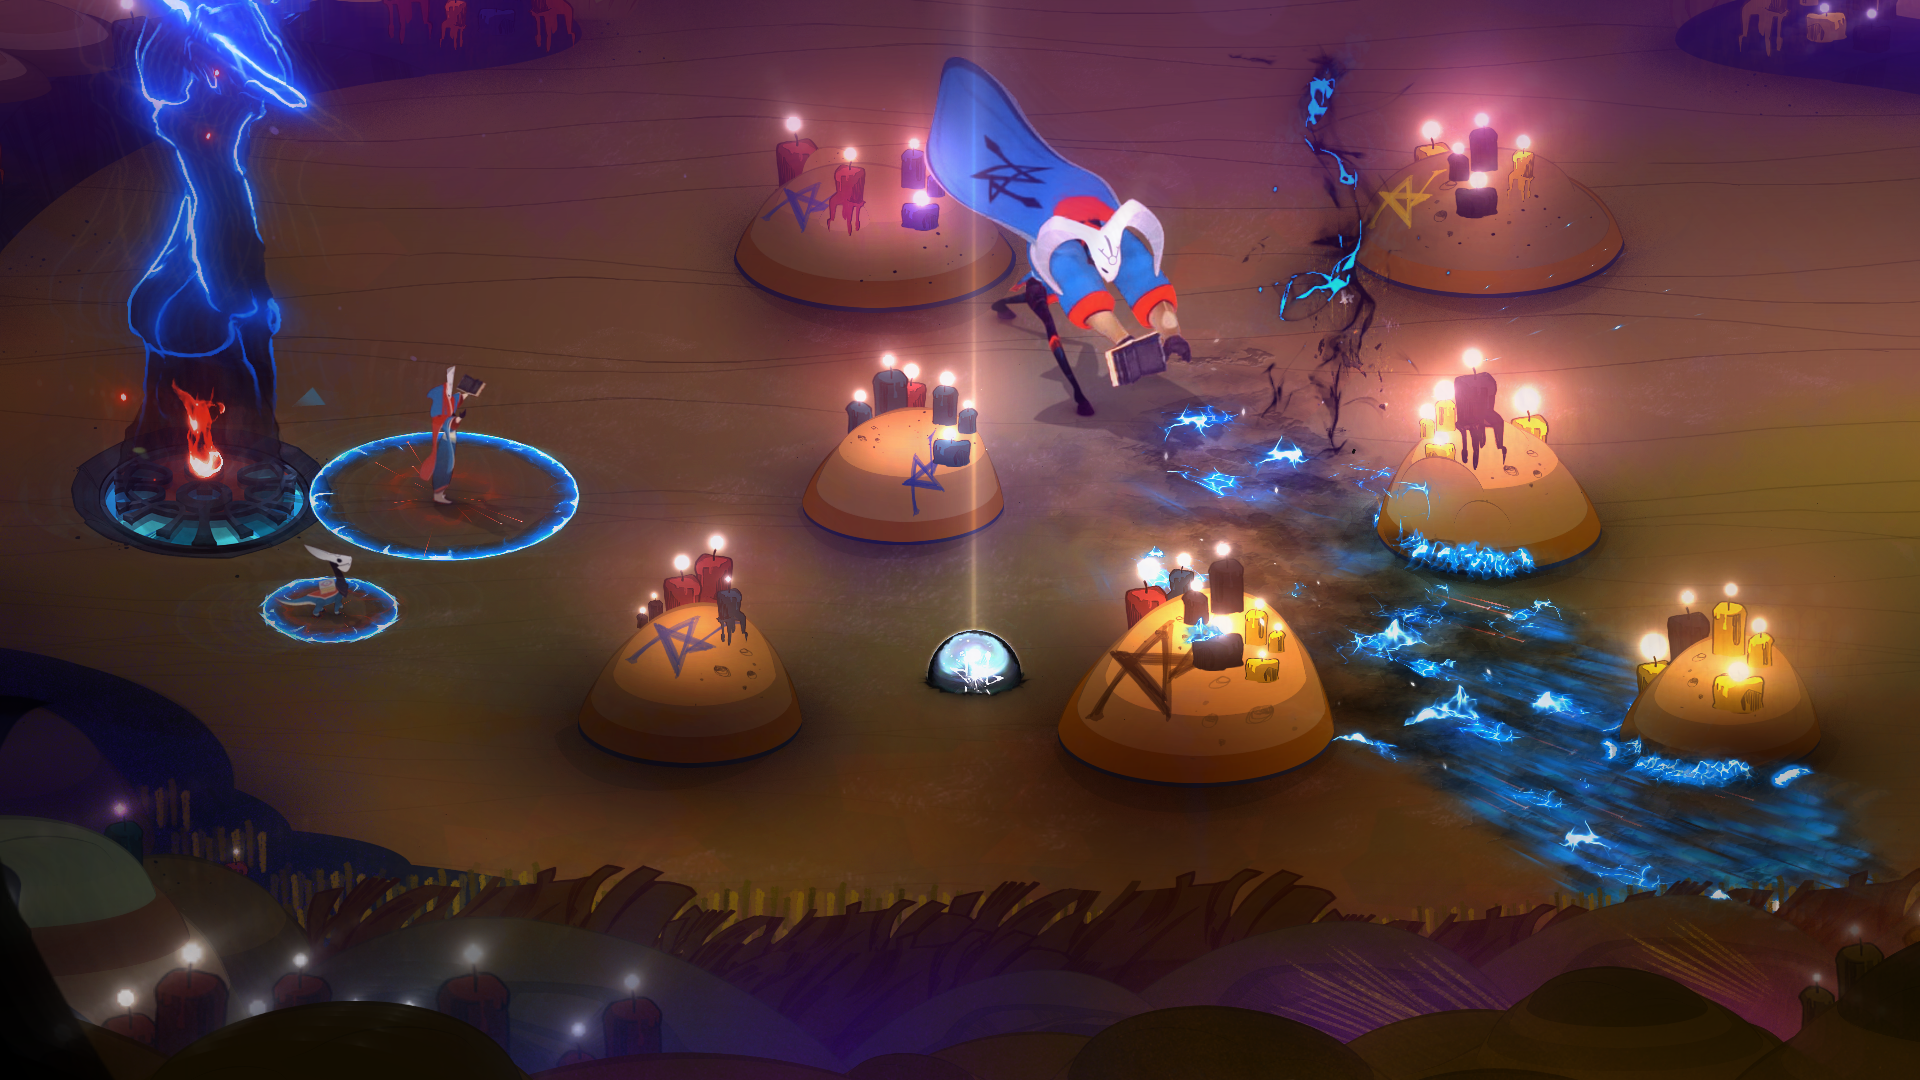 Modojo | Supergiant Games' Next Project Is RPG Pyre